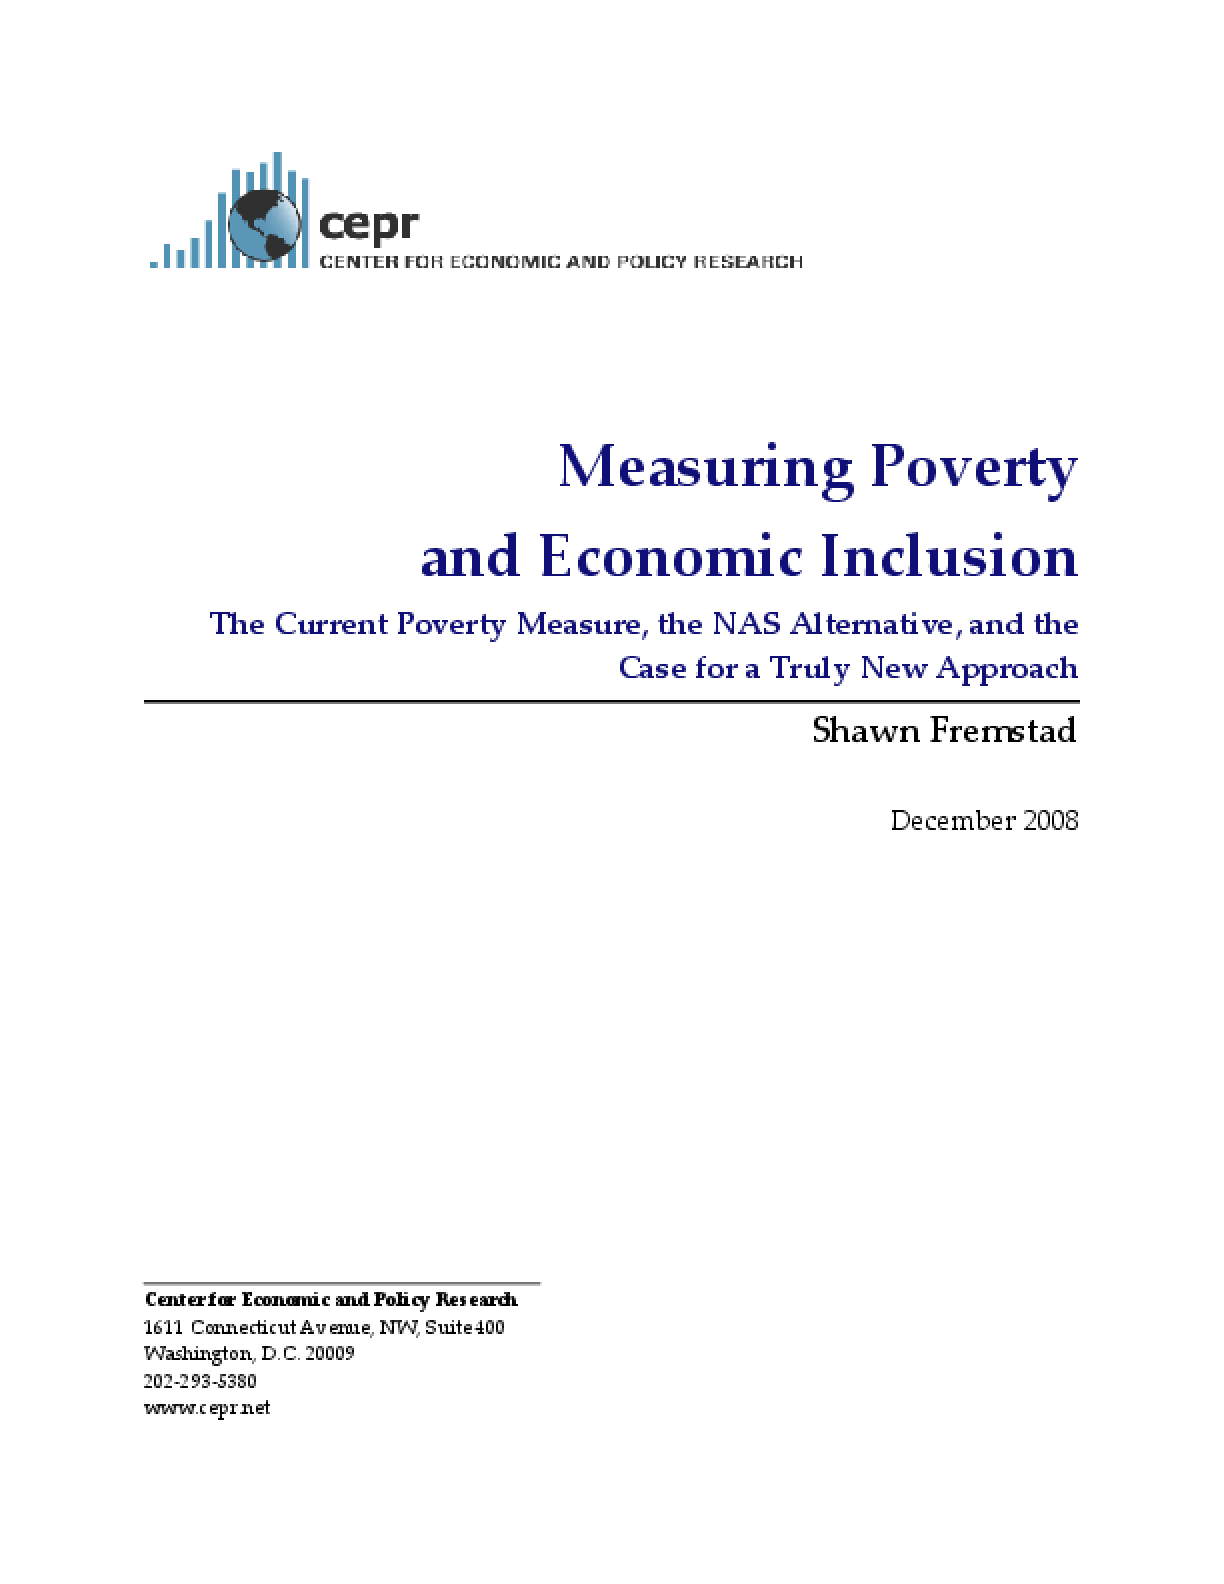 Measuring Poverty and Economic Inclusion